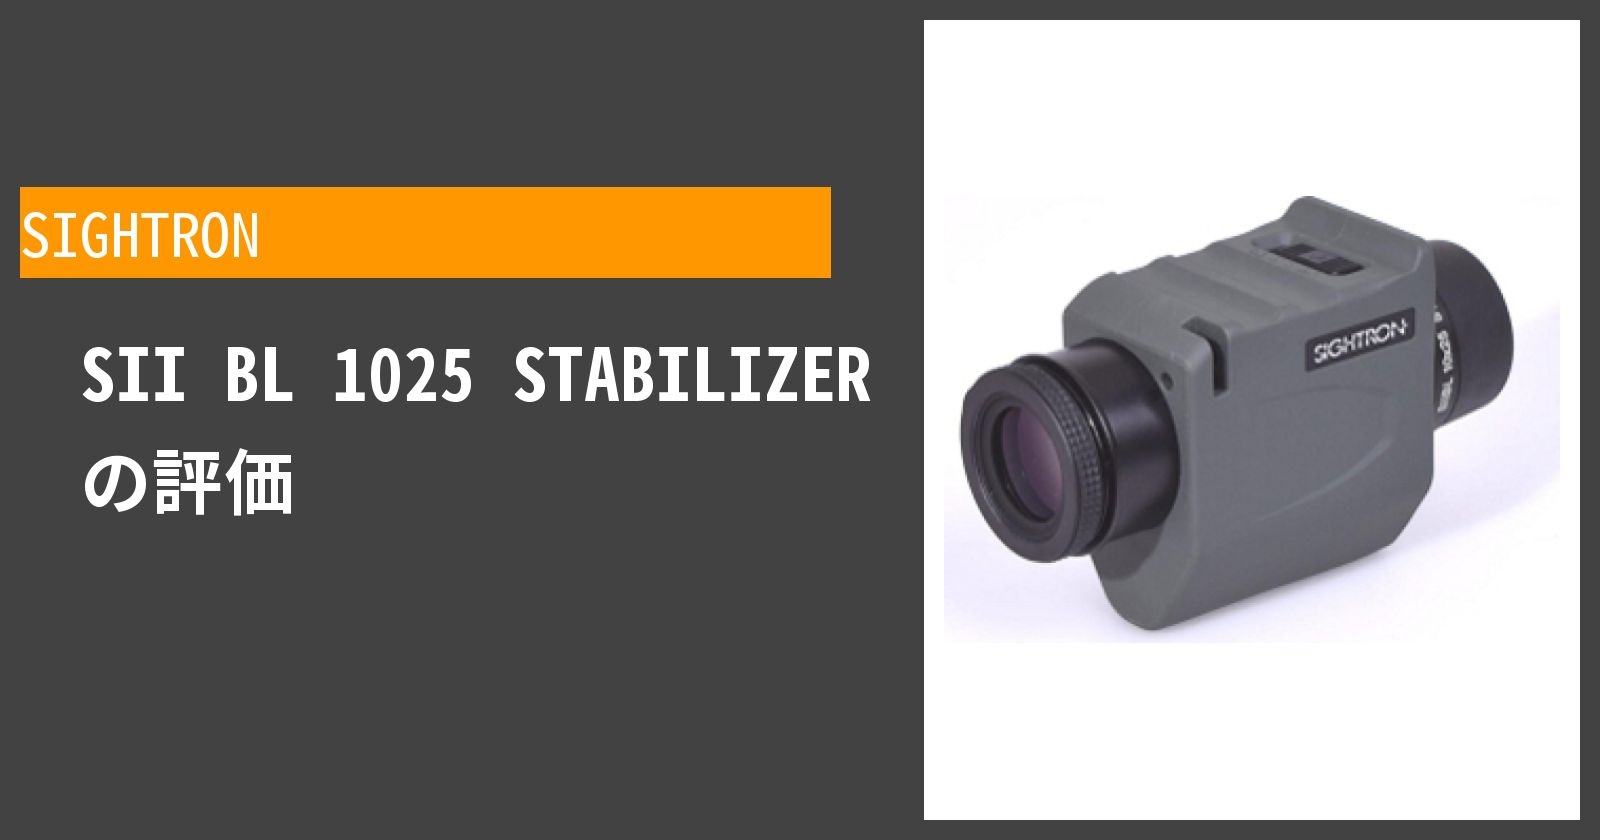 SII BL 1025 STABILIZERを徹底評価